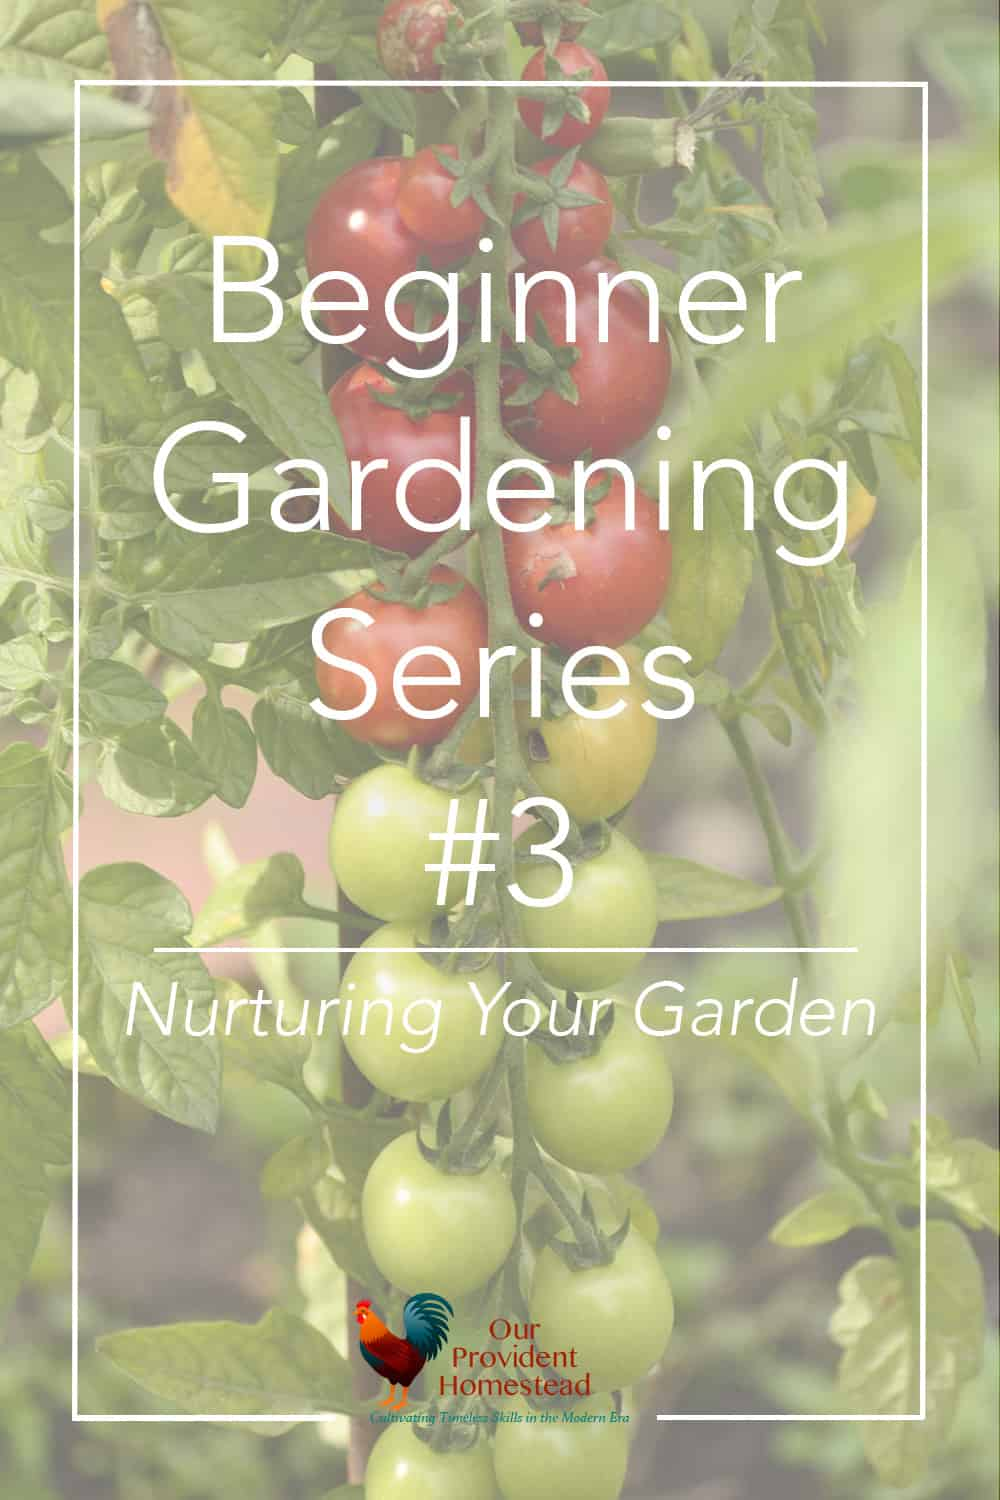 Are you new to gardening? Our beginner gardening series will help answer your questions, including nurturing your garden. Beginner Gardening | Nurturing Your Garden | Gardening Tips